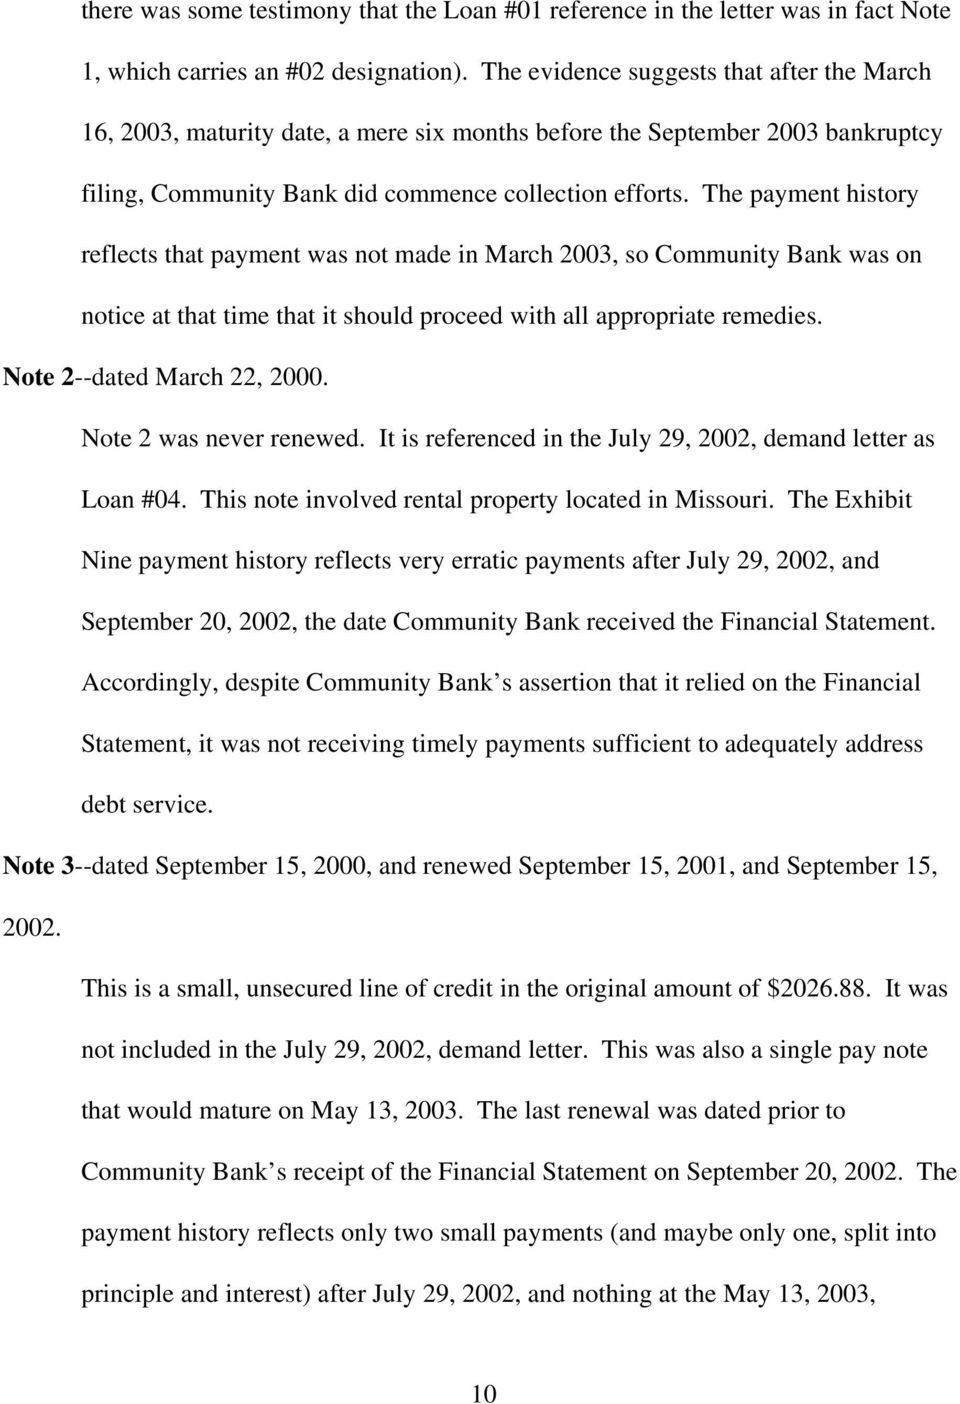 The payment history reflects that payment was not made in March 2003, so Community Bank was on notice at that time that it should proceed with all appropriate remedies. Note 2--dated March 22, 2000.